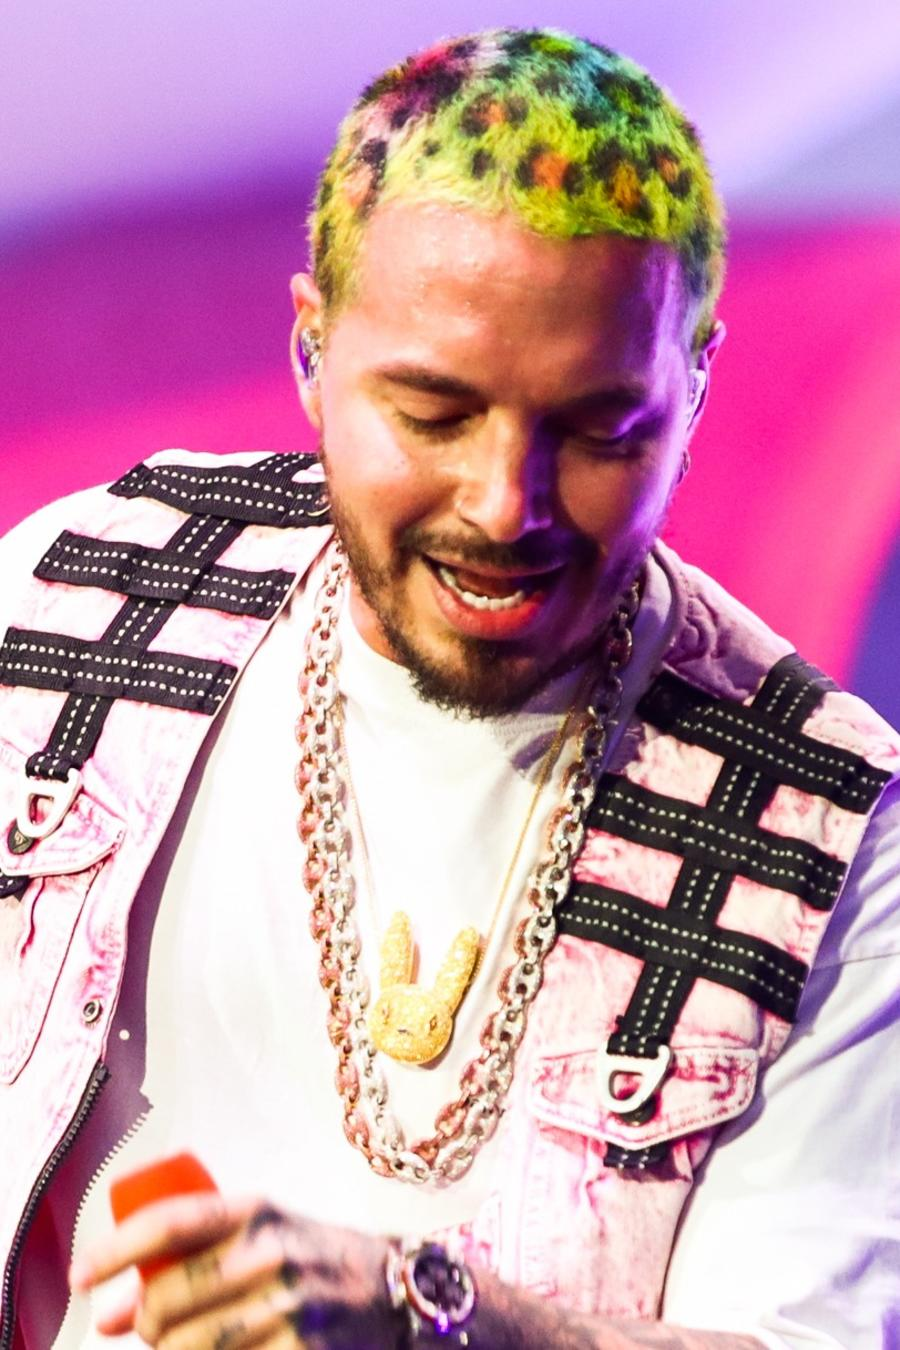 Check out J Balvin's hair evolution in photos